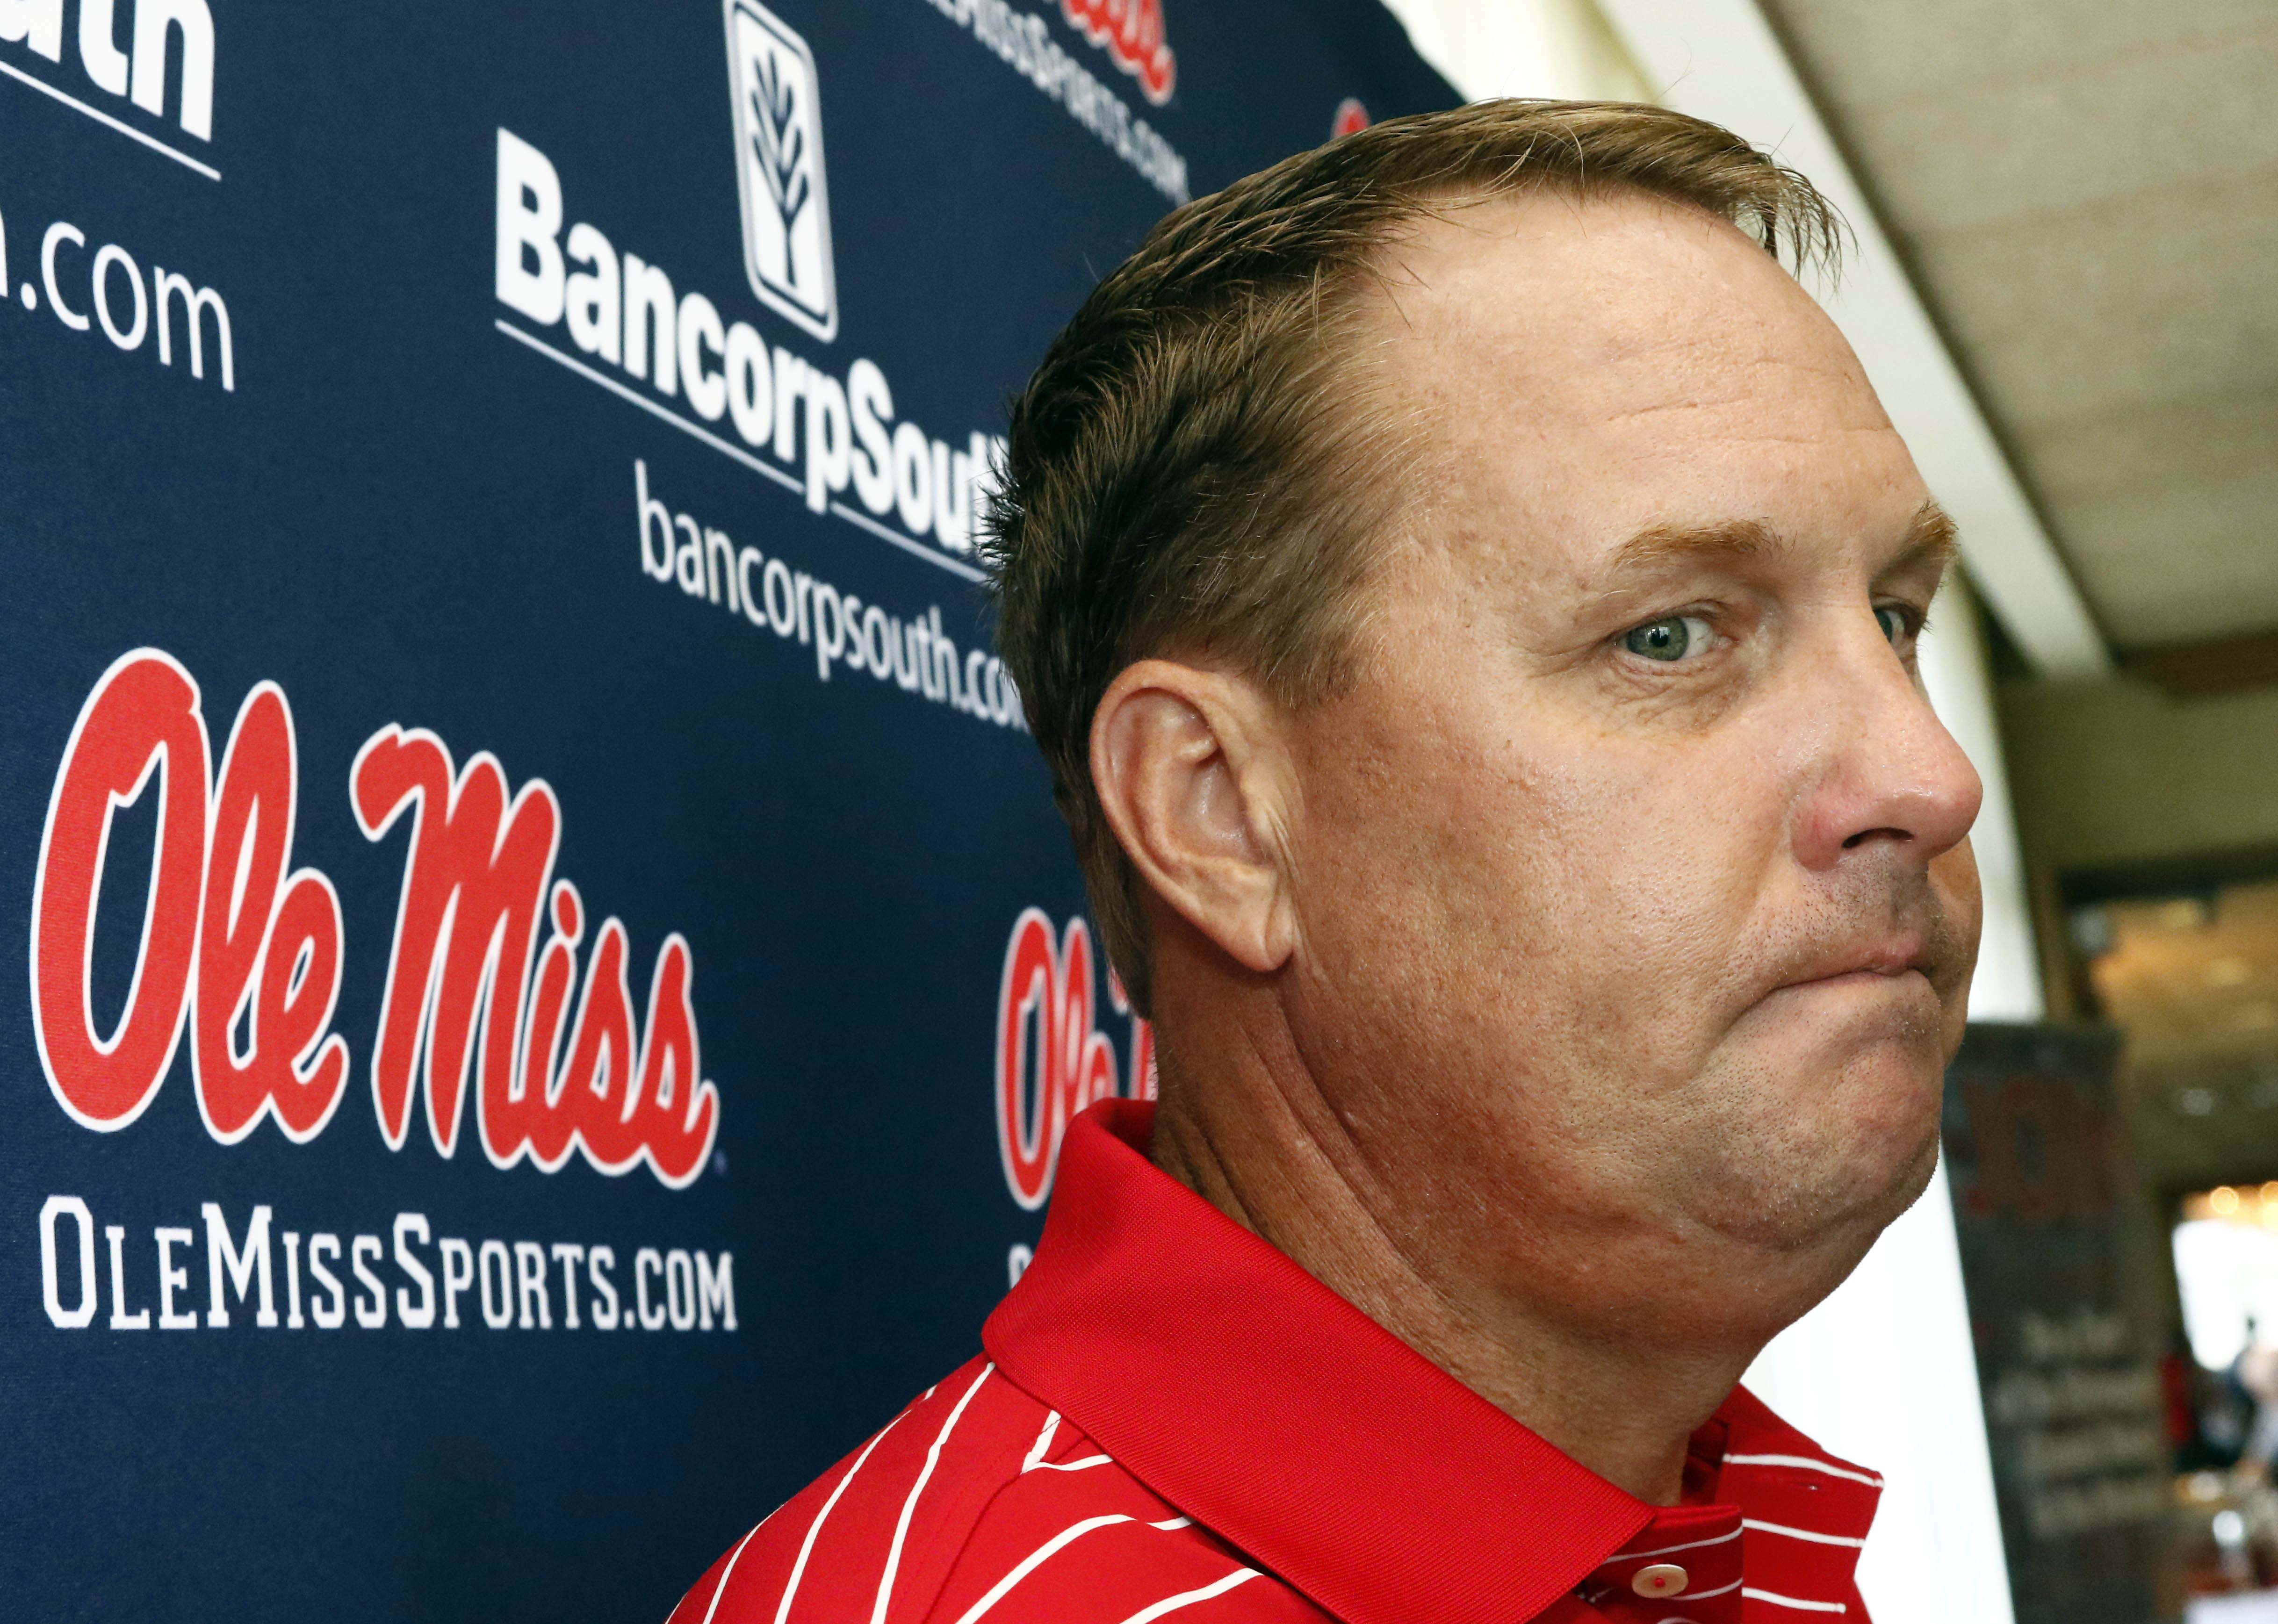 Ole Miss Coach Quits After School Checks Phone Records